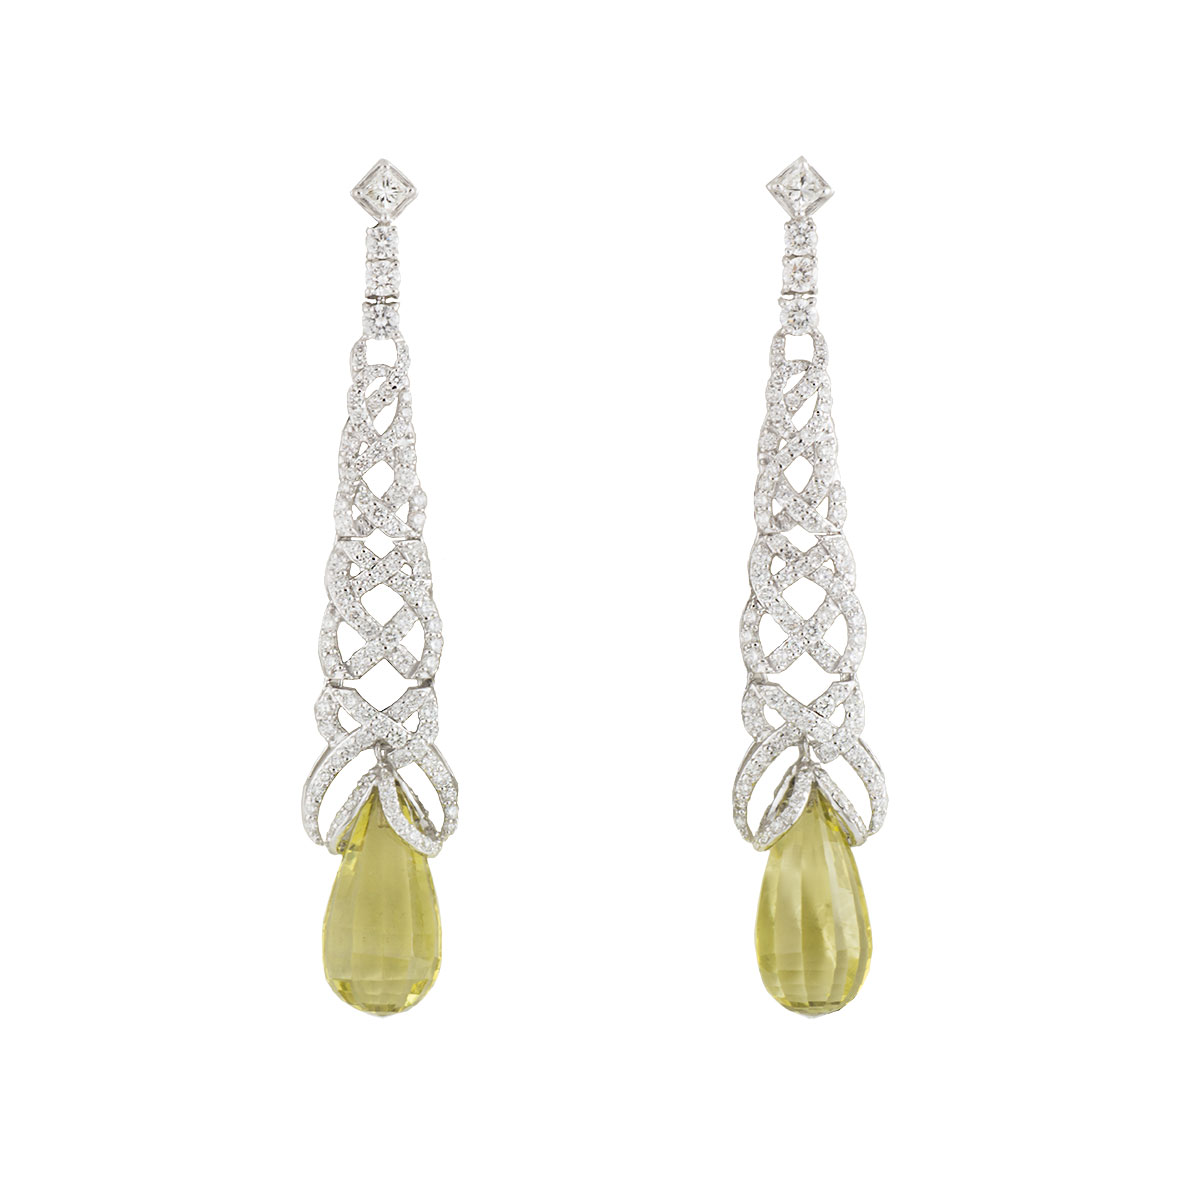 White Gold Diamond and Lemon Quartz Earrings